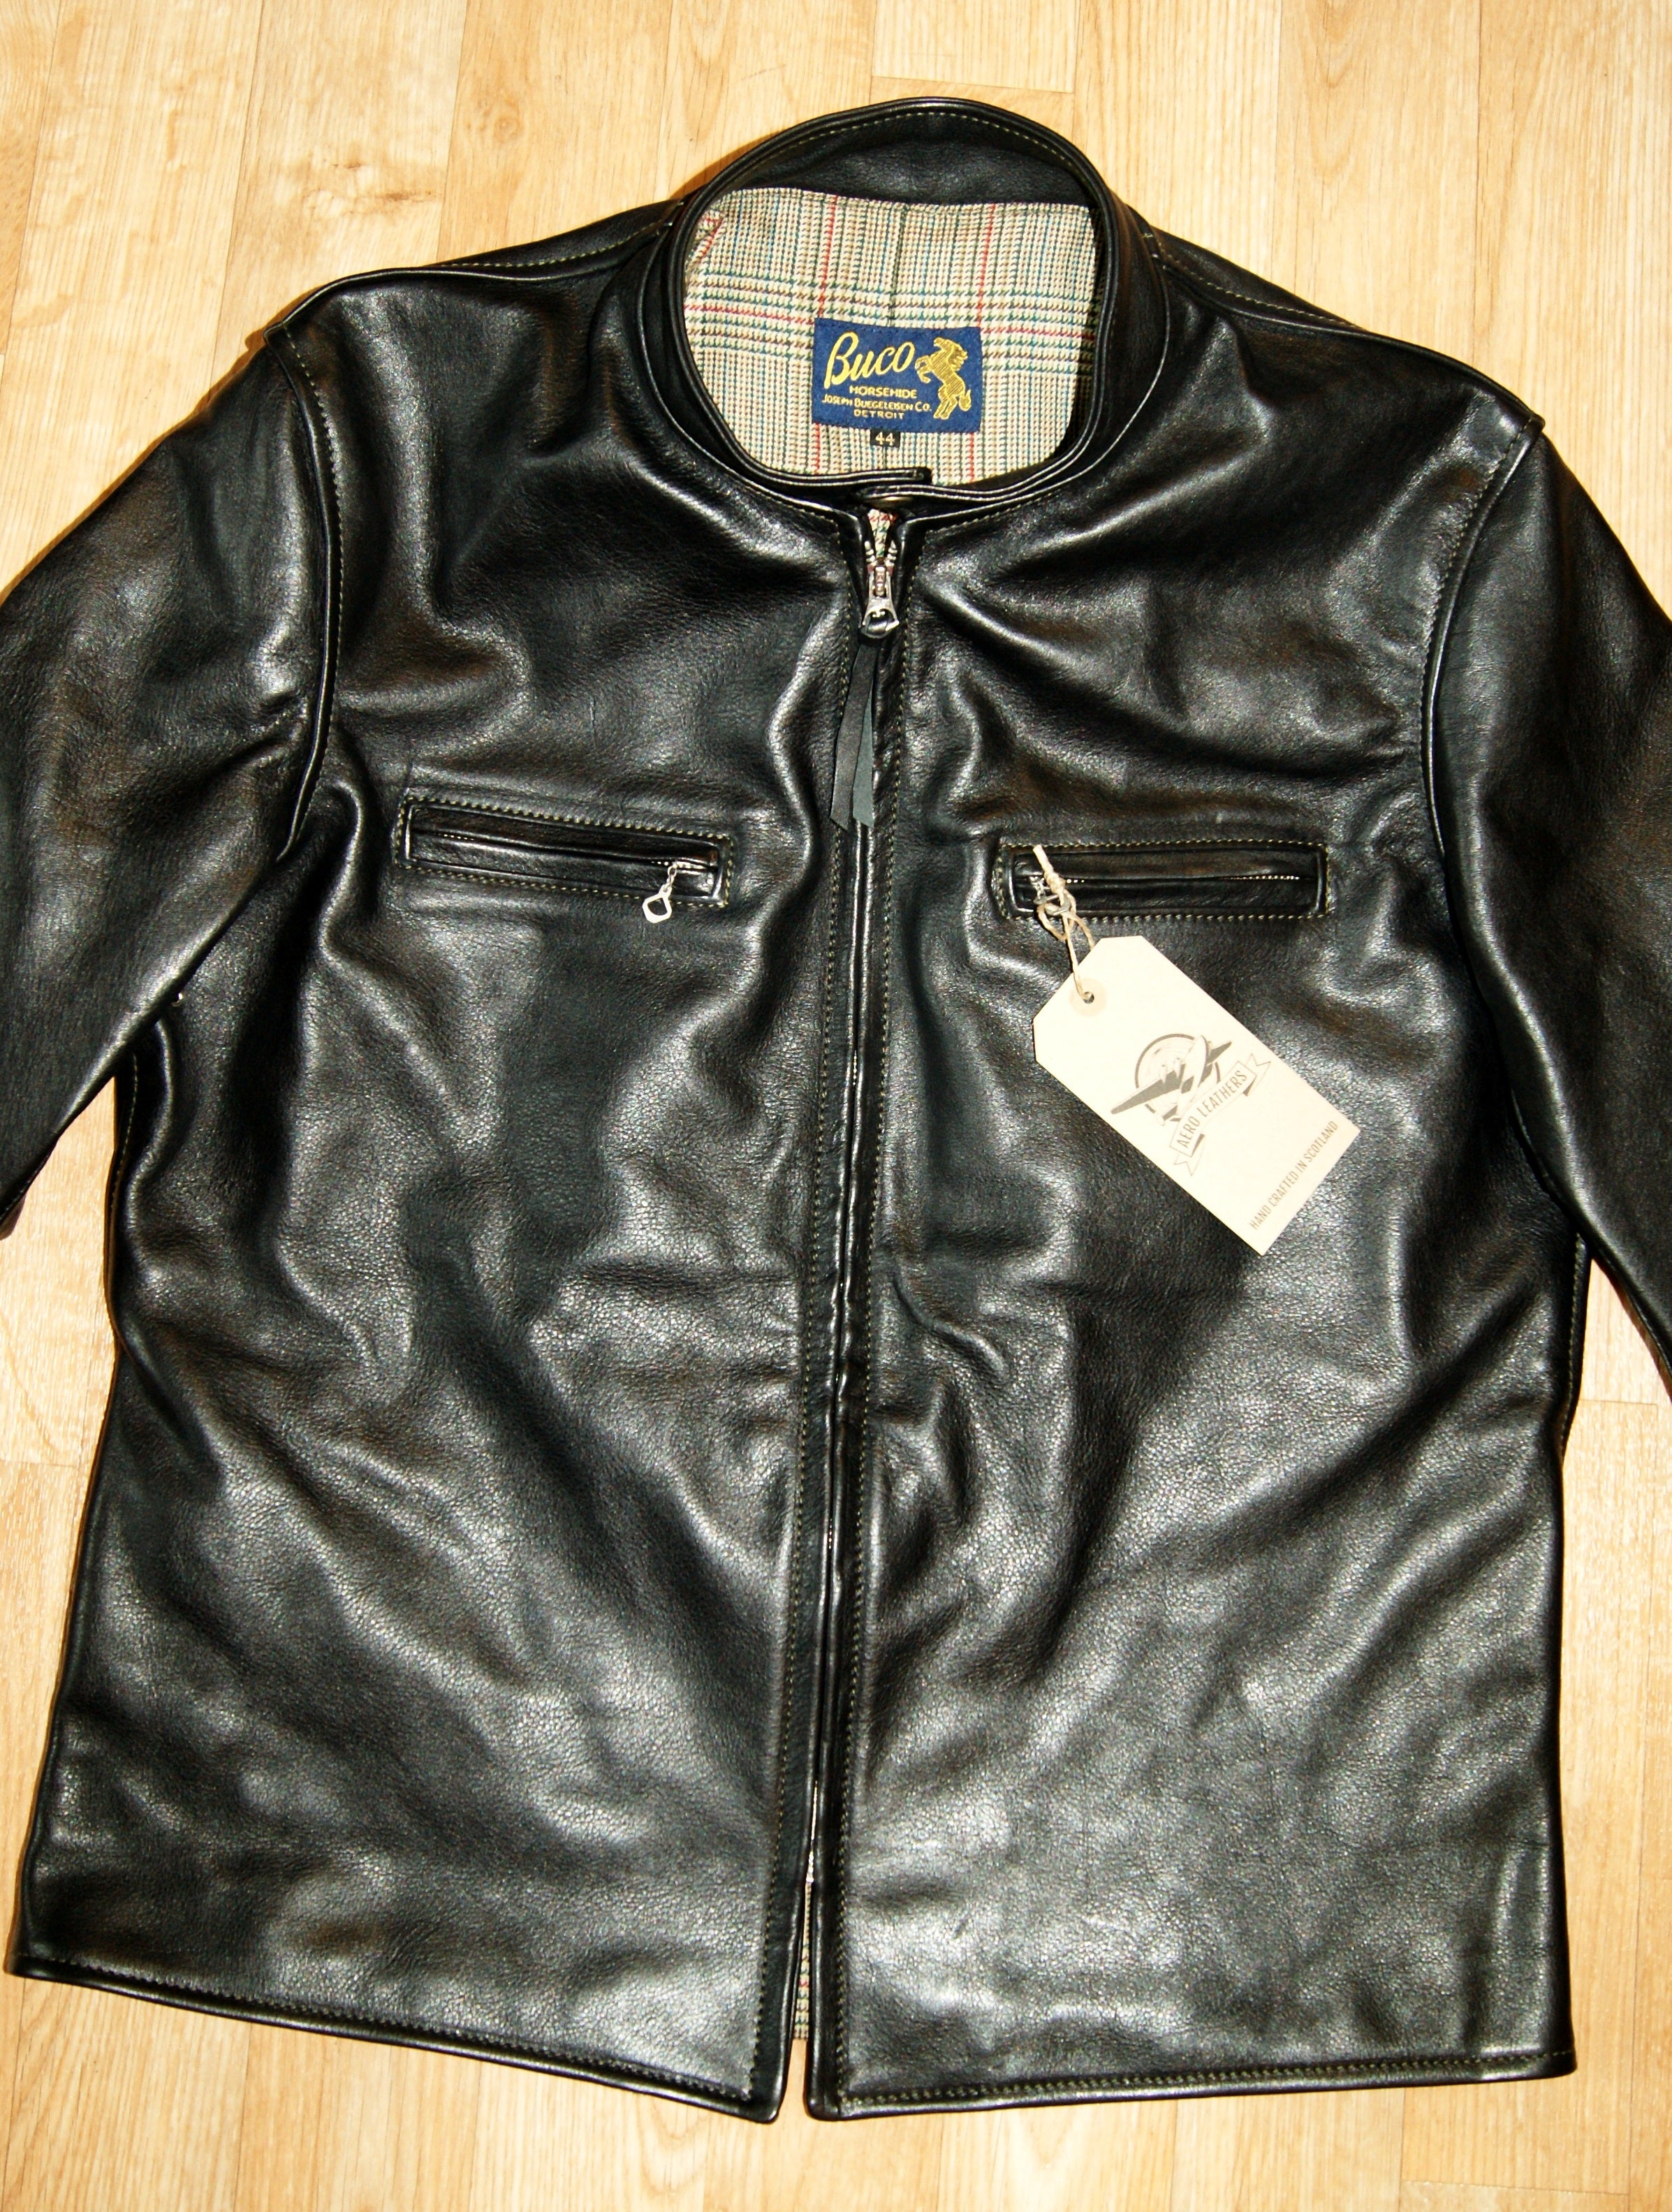 Aero Board Racer, size 44, Black Vicenza Horsehide